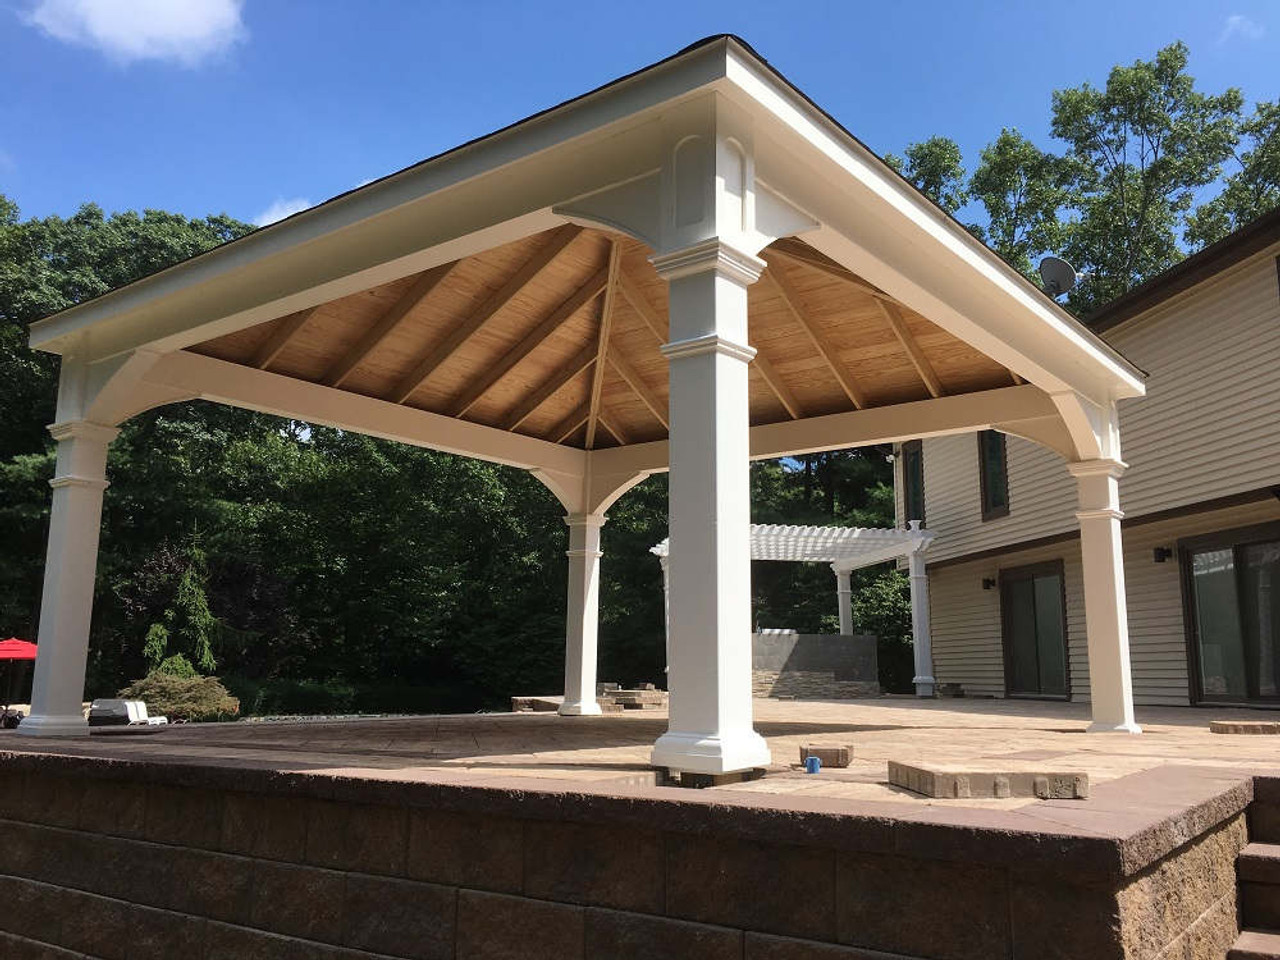 16x16 Pressure Treated Pavilion Kit with pavers elevated patio, Woodbury, NY